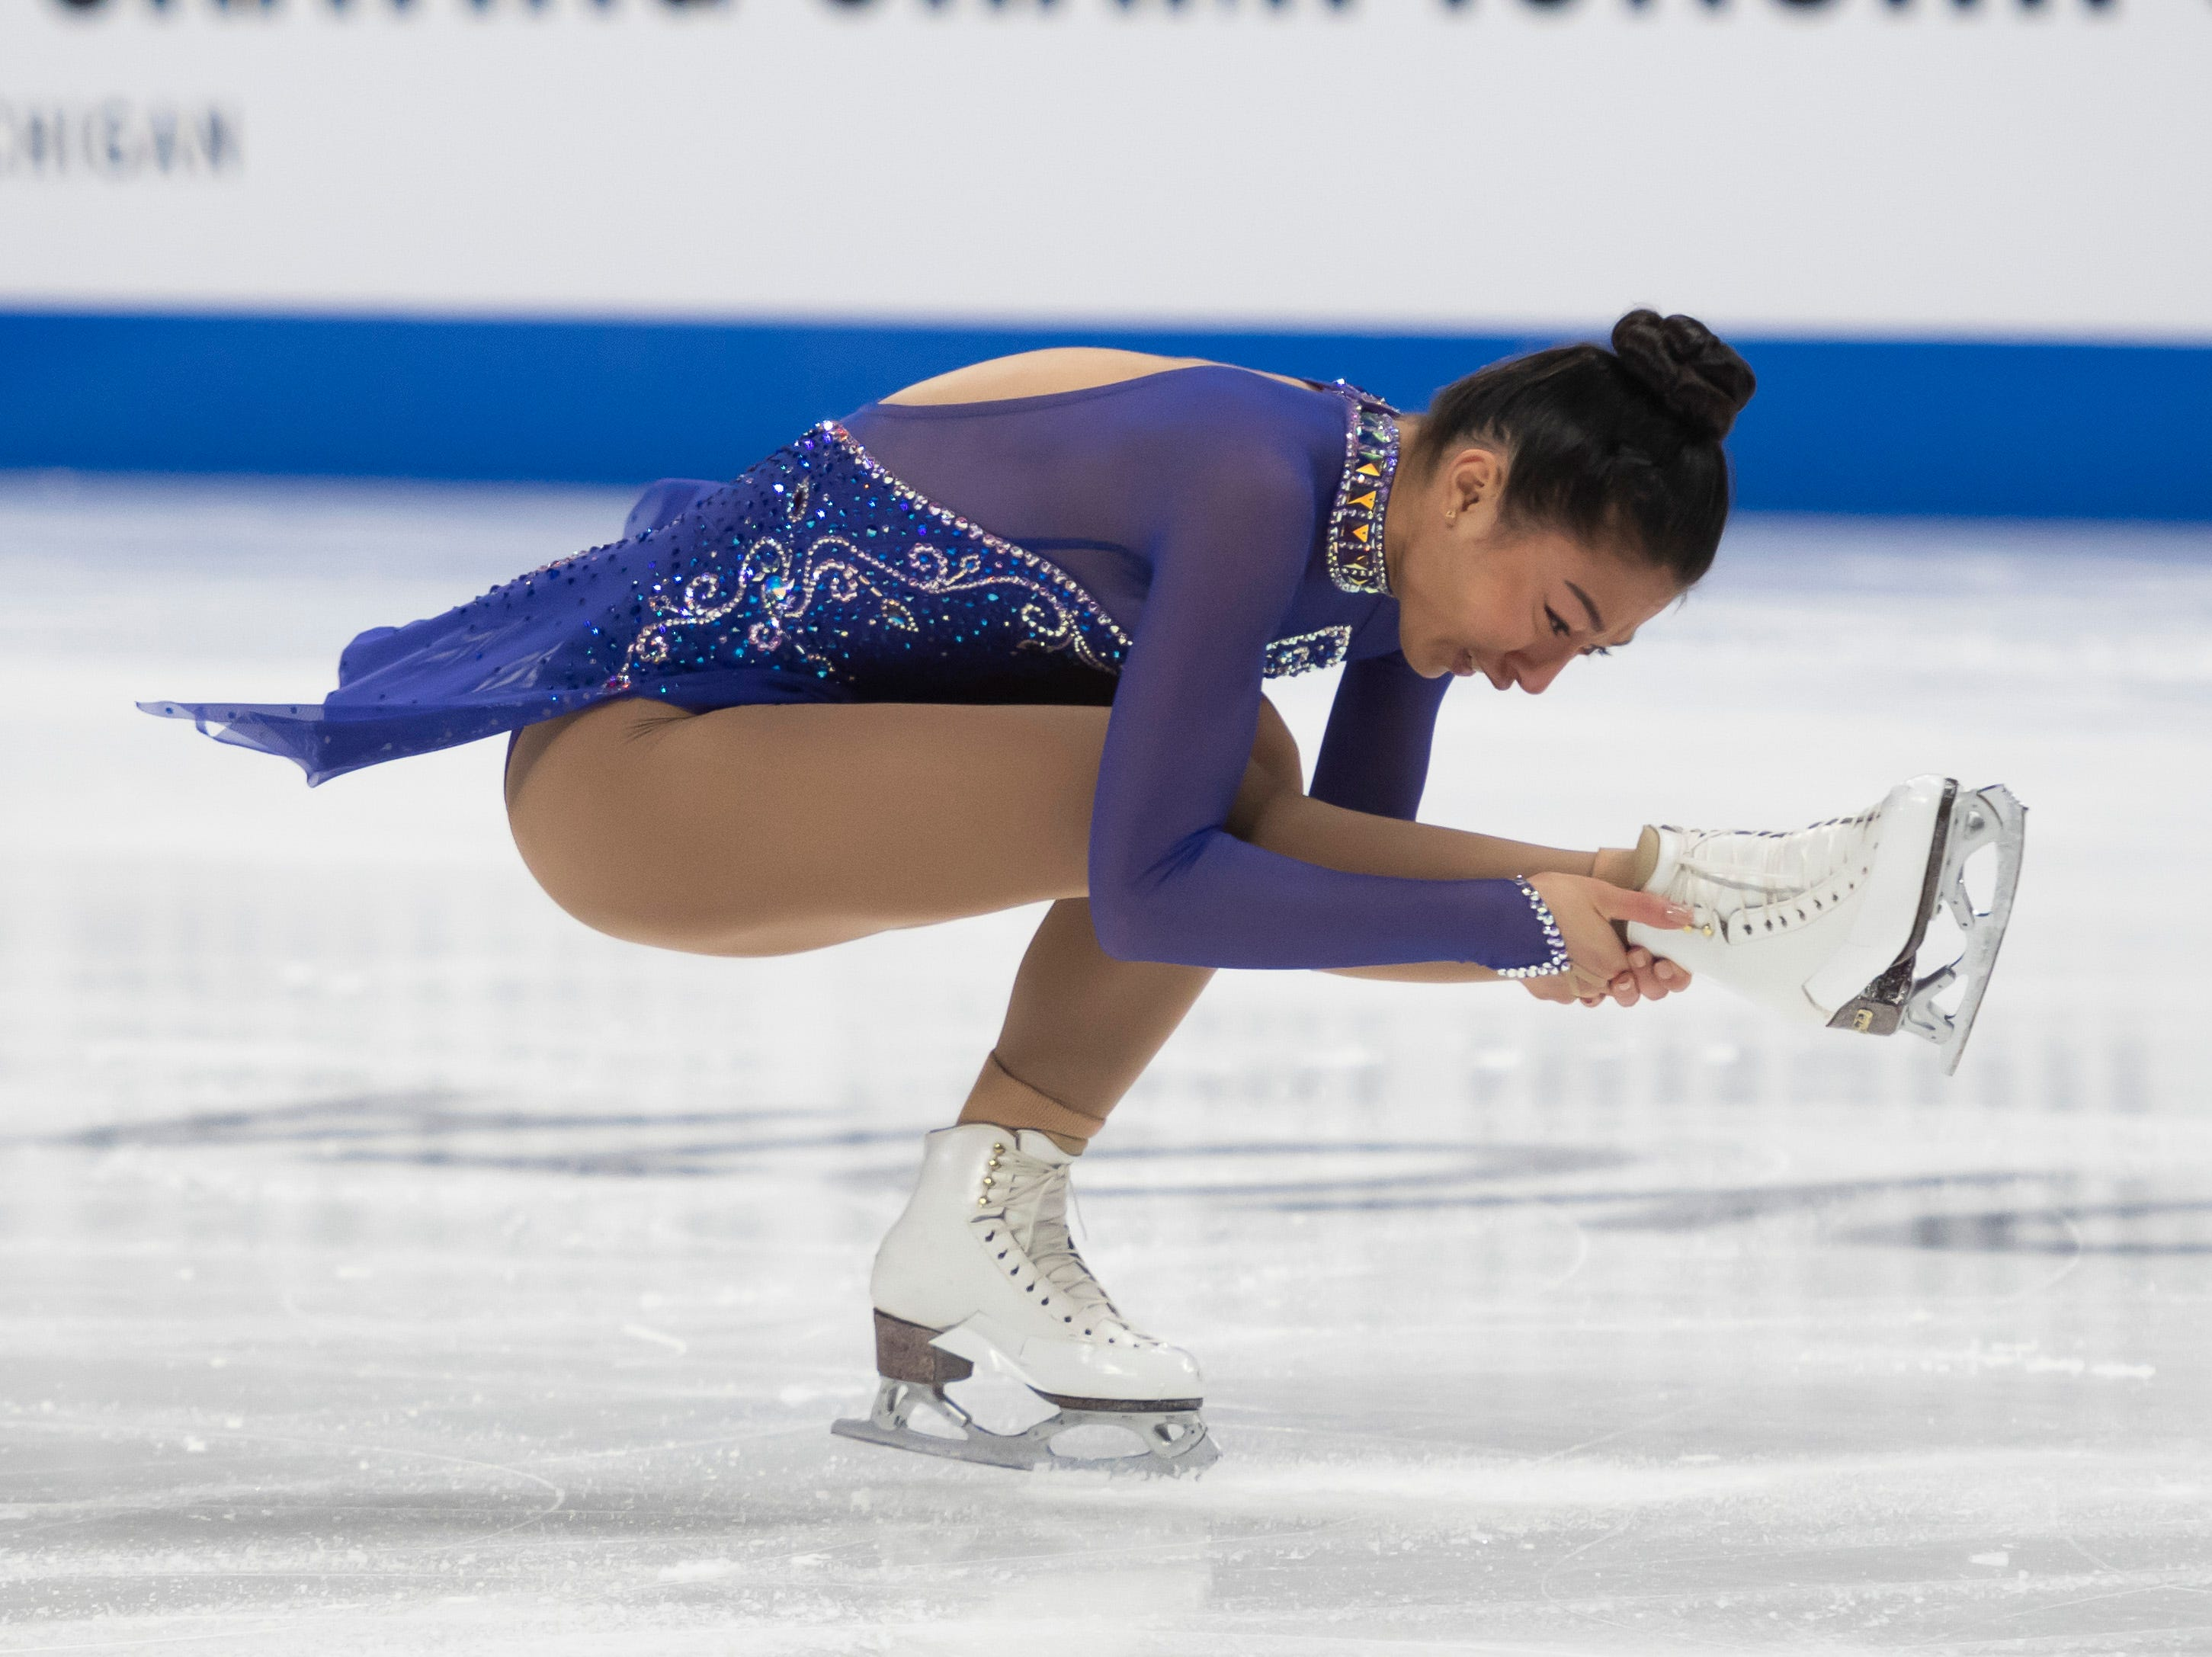 Sierra Venetta competes in the ladies short program.